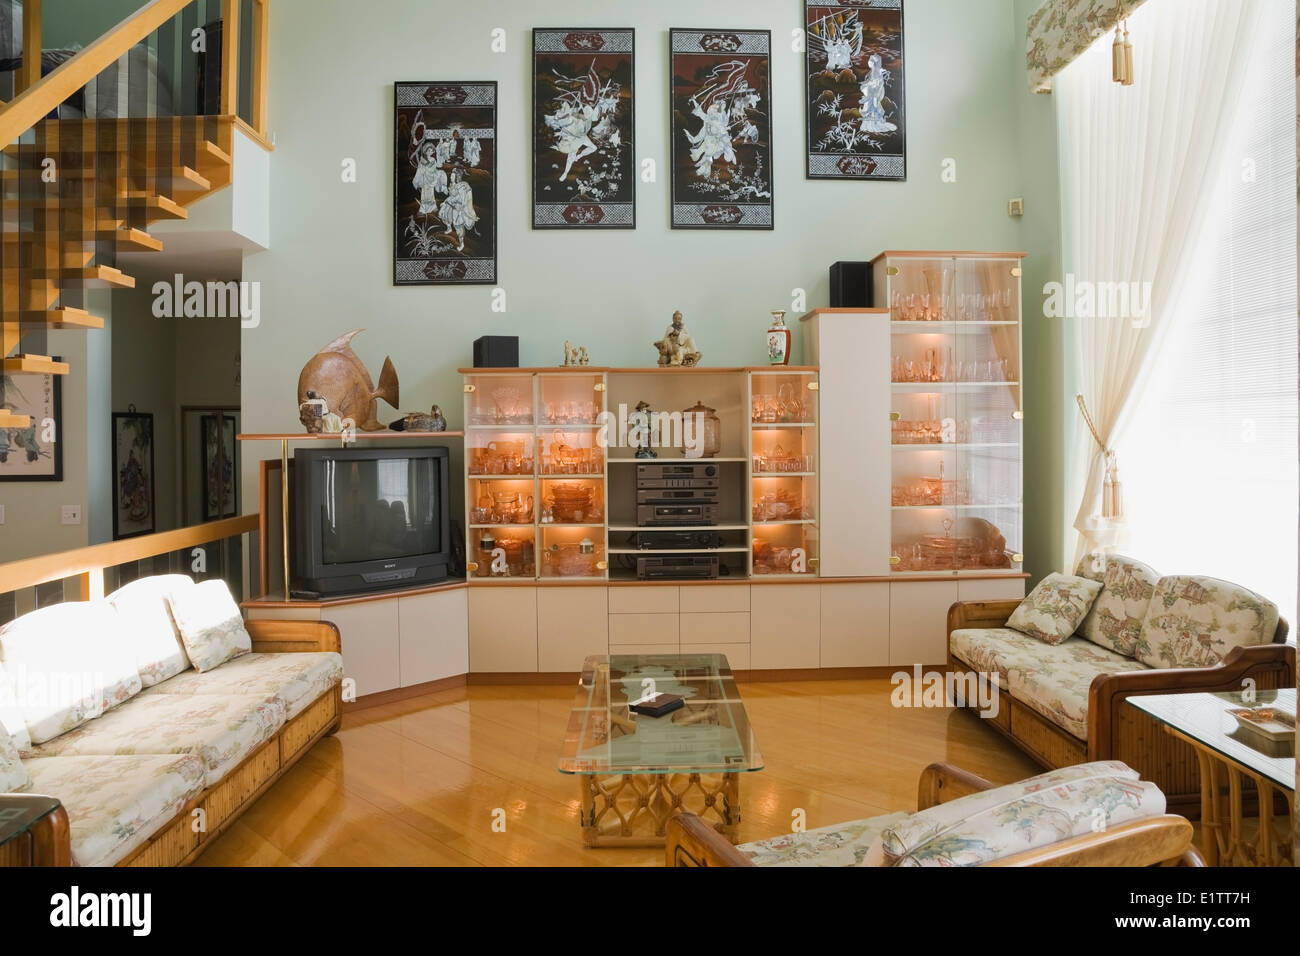 Chinese style furniture and furnishings in a modern cottage style residential home quebec canada